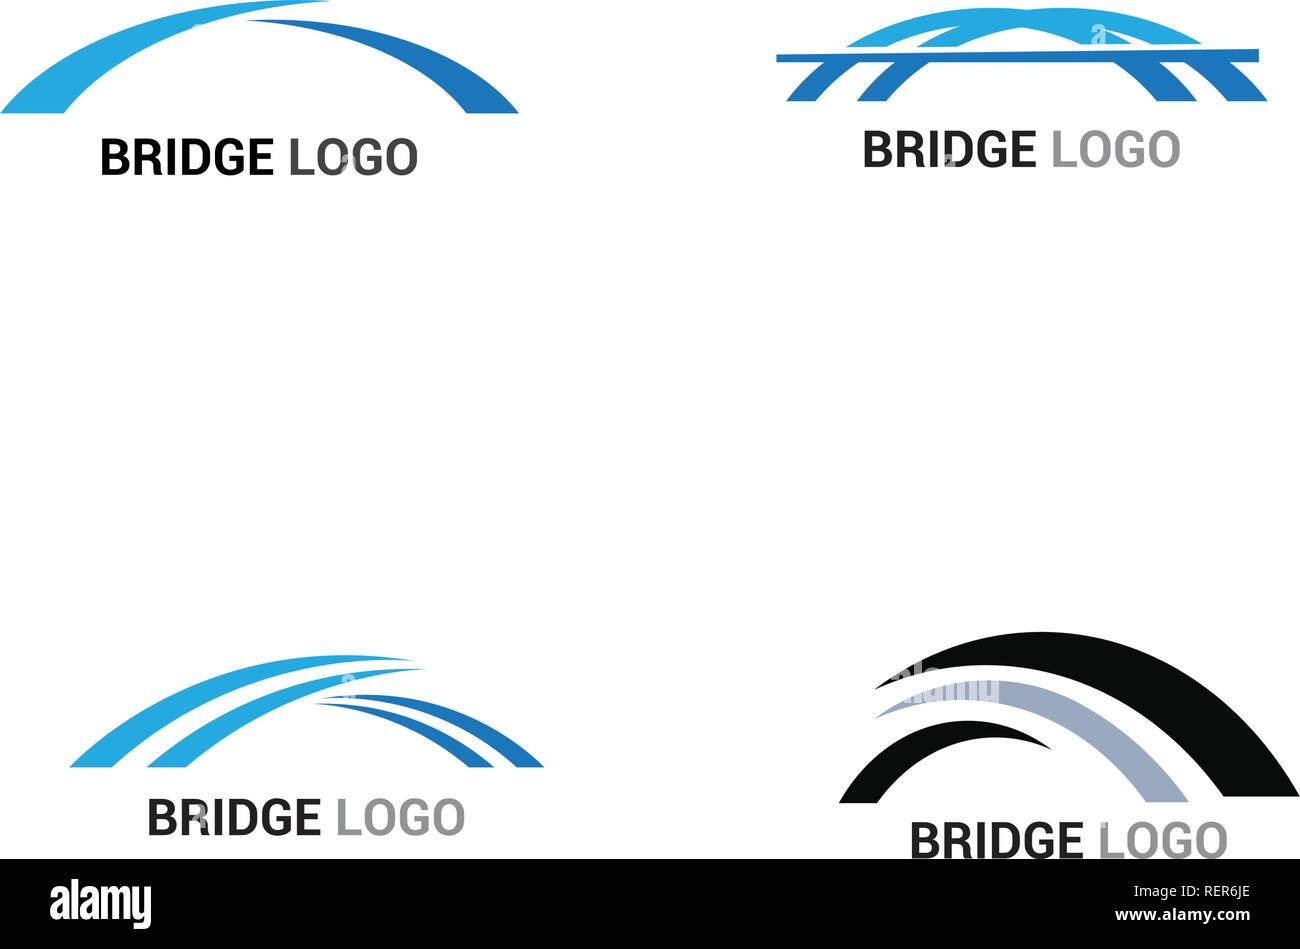 Bridge logo and symbol vector template - Stock Image